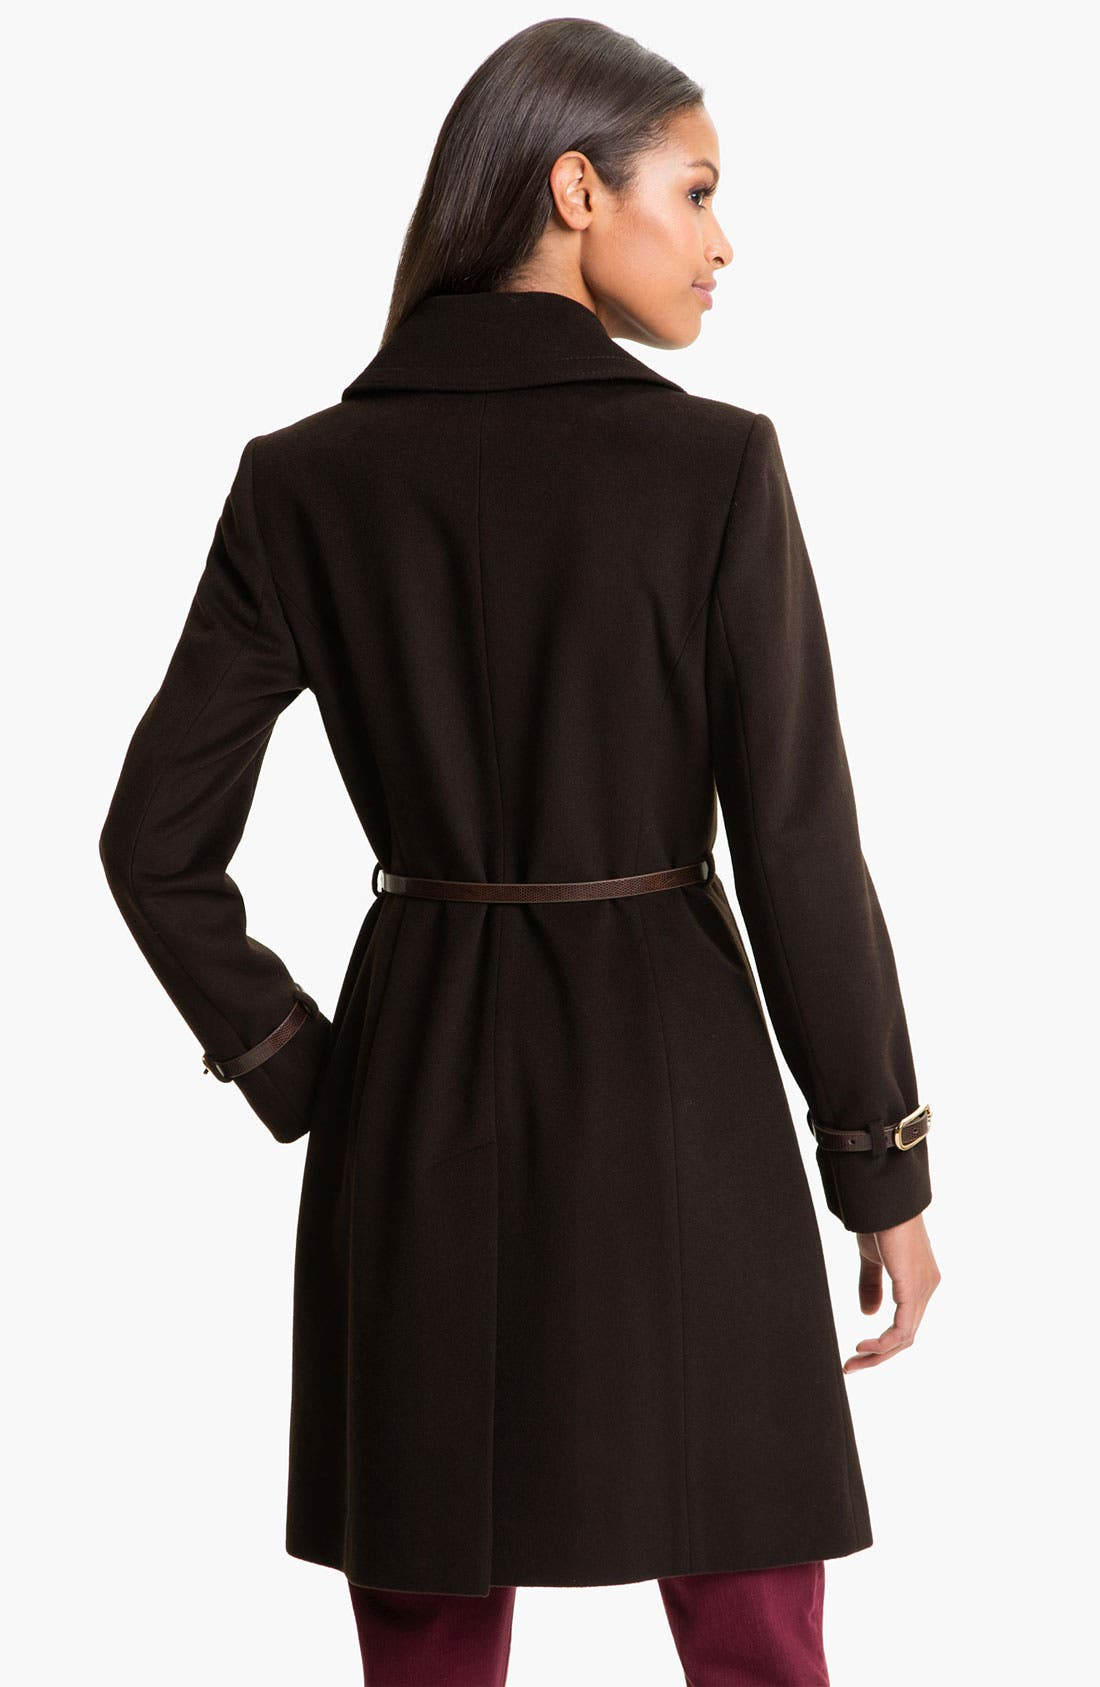 'Kate' Belted Notch Collar Coat,                             Alternate thumbnail 3, color,                             200